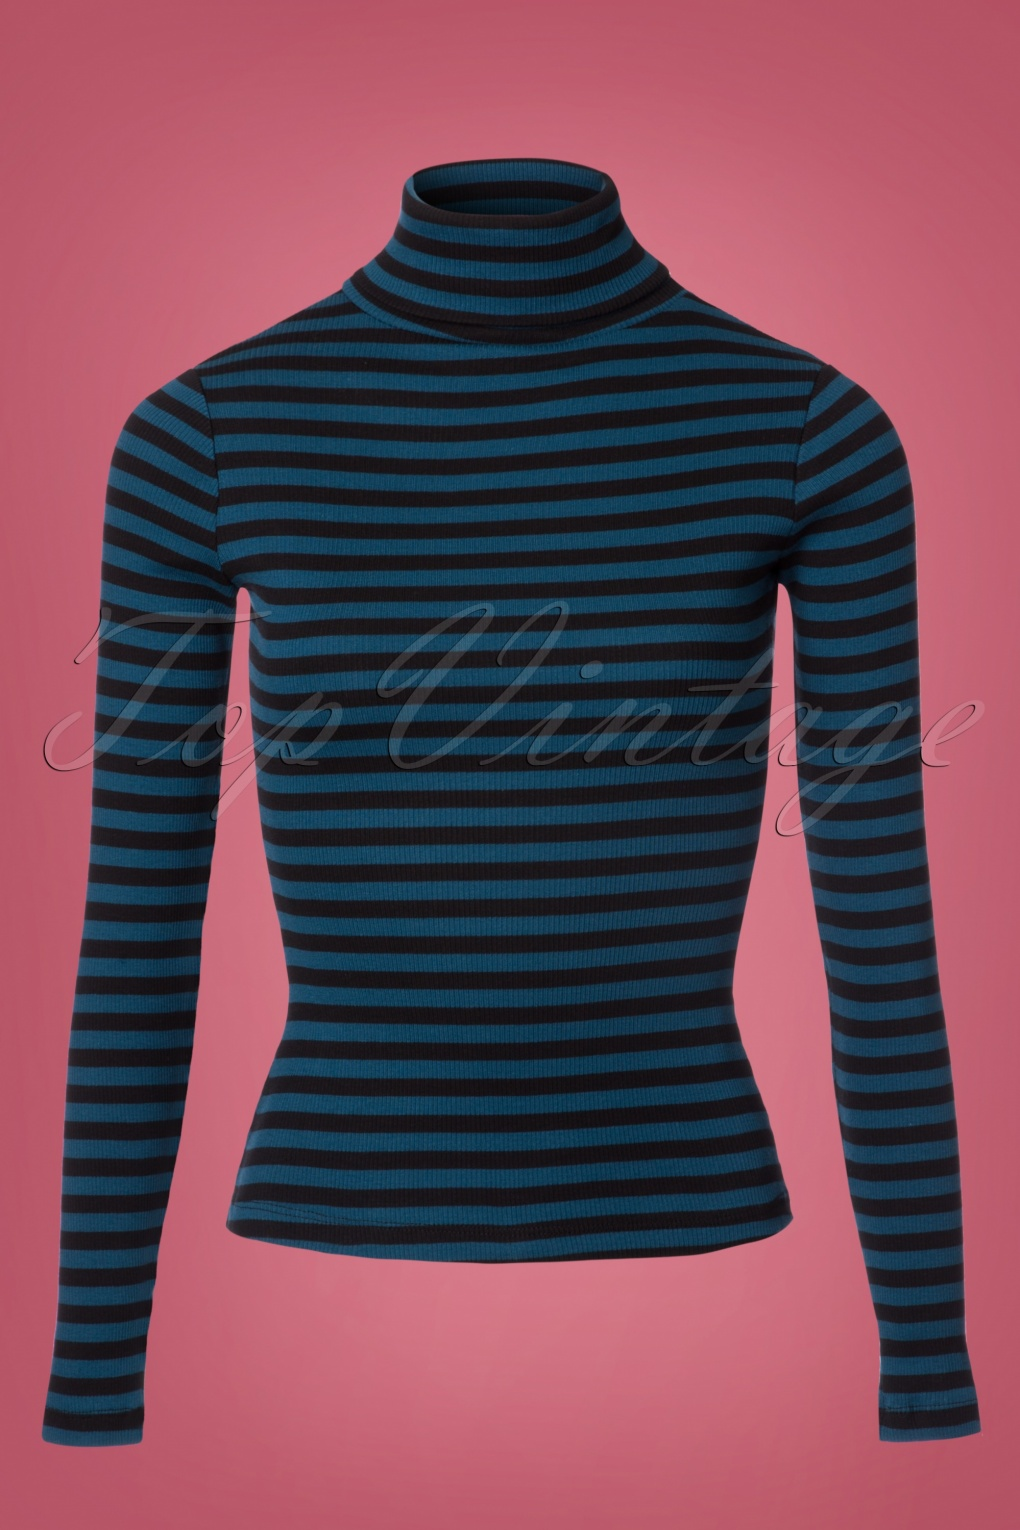 Shop 1960s Style Blouses, Shirts and Tops 70s Rollneck Rib Stripe Top in Storm Blue £45.45 AT vintagedancer.com